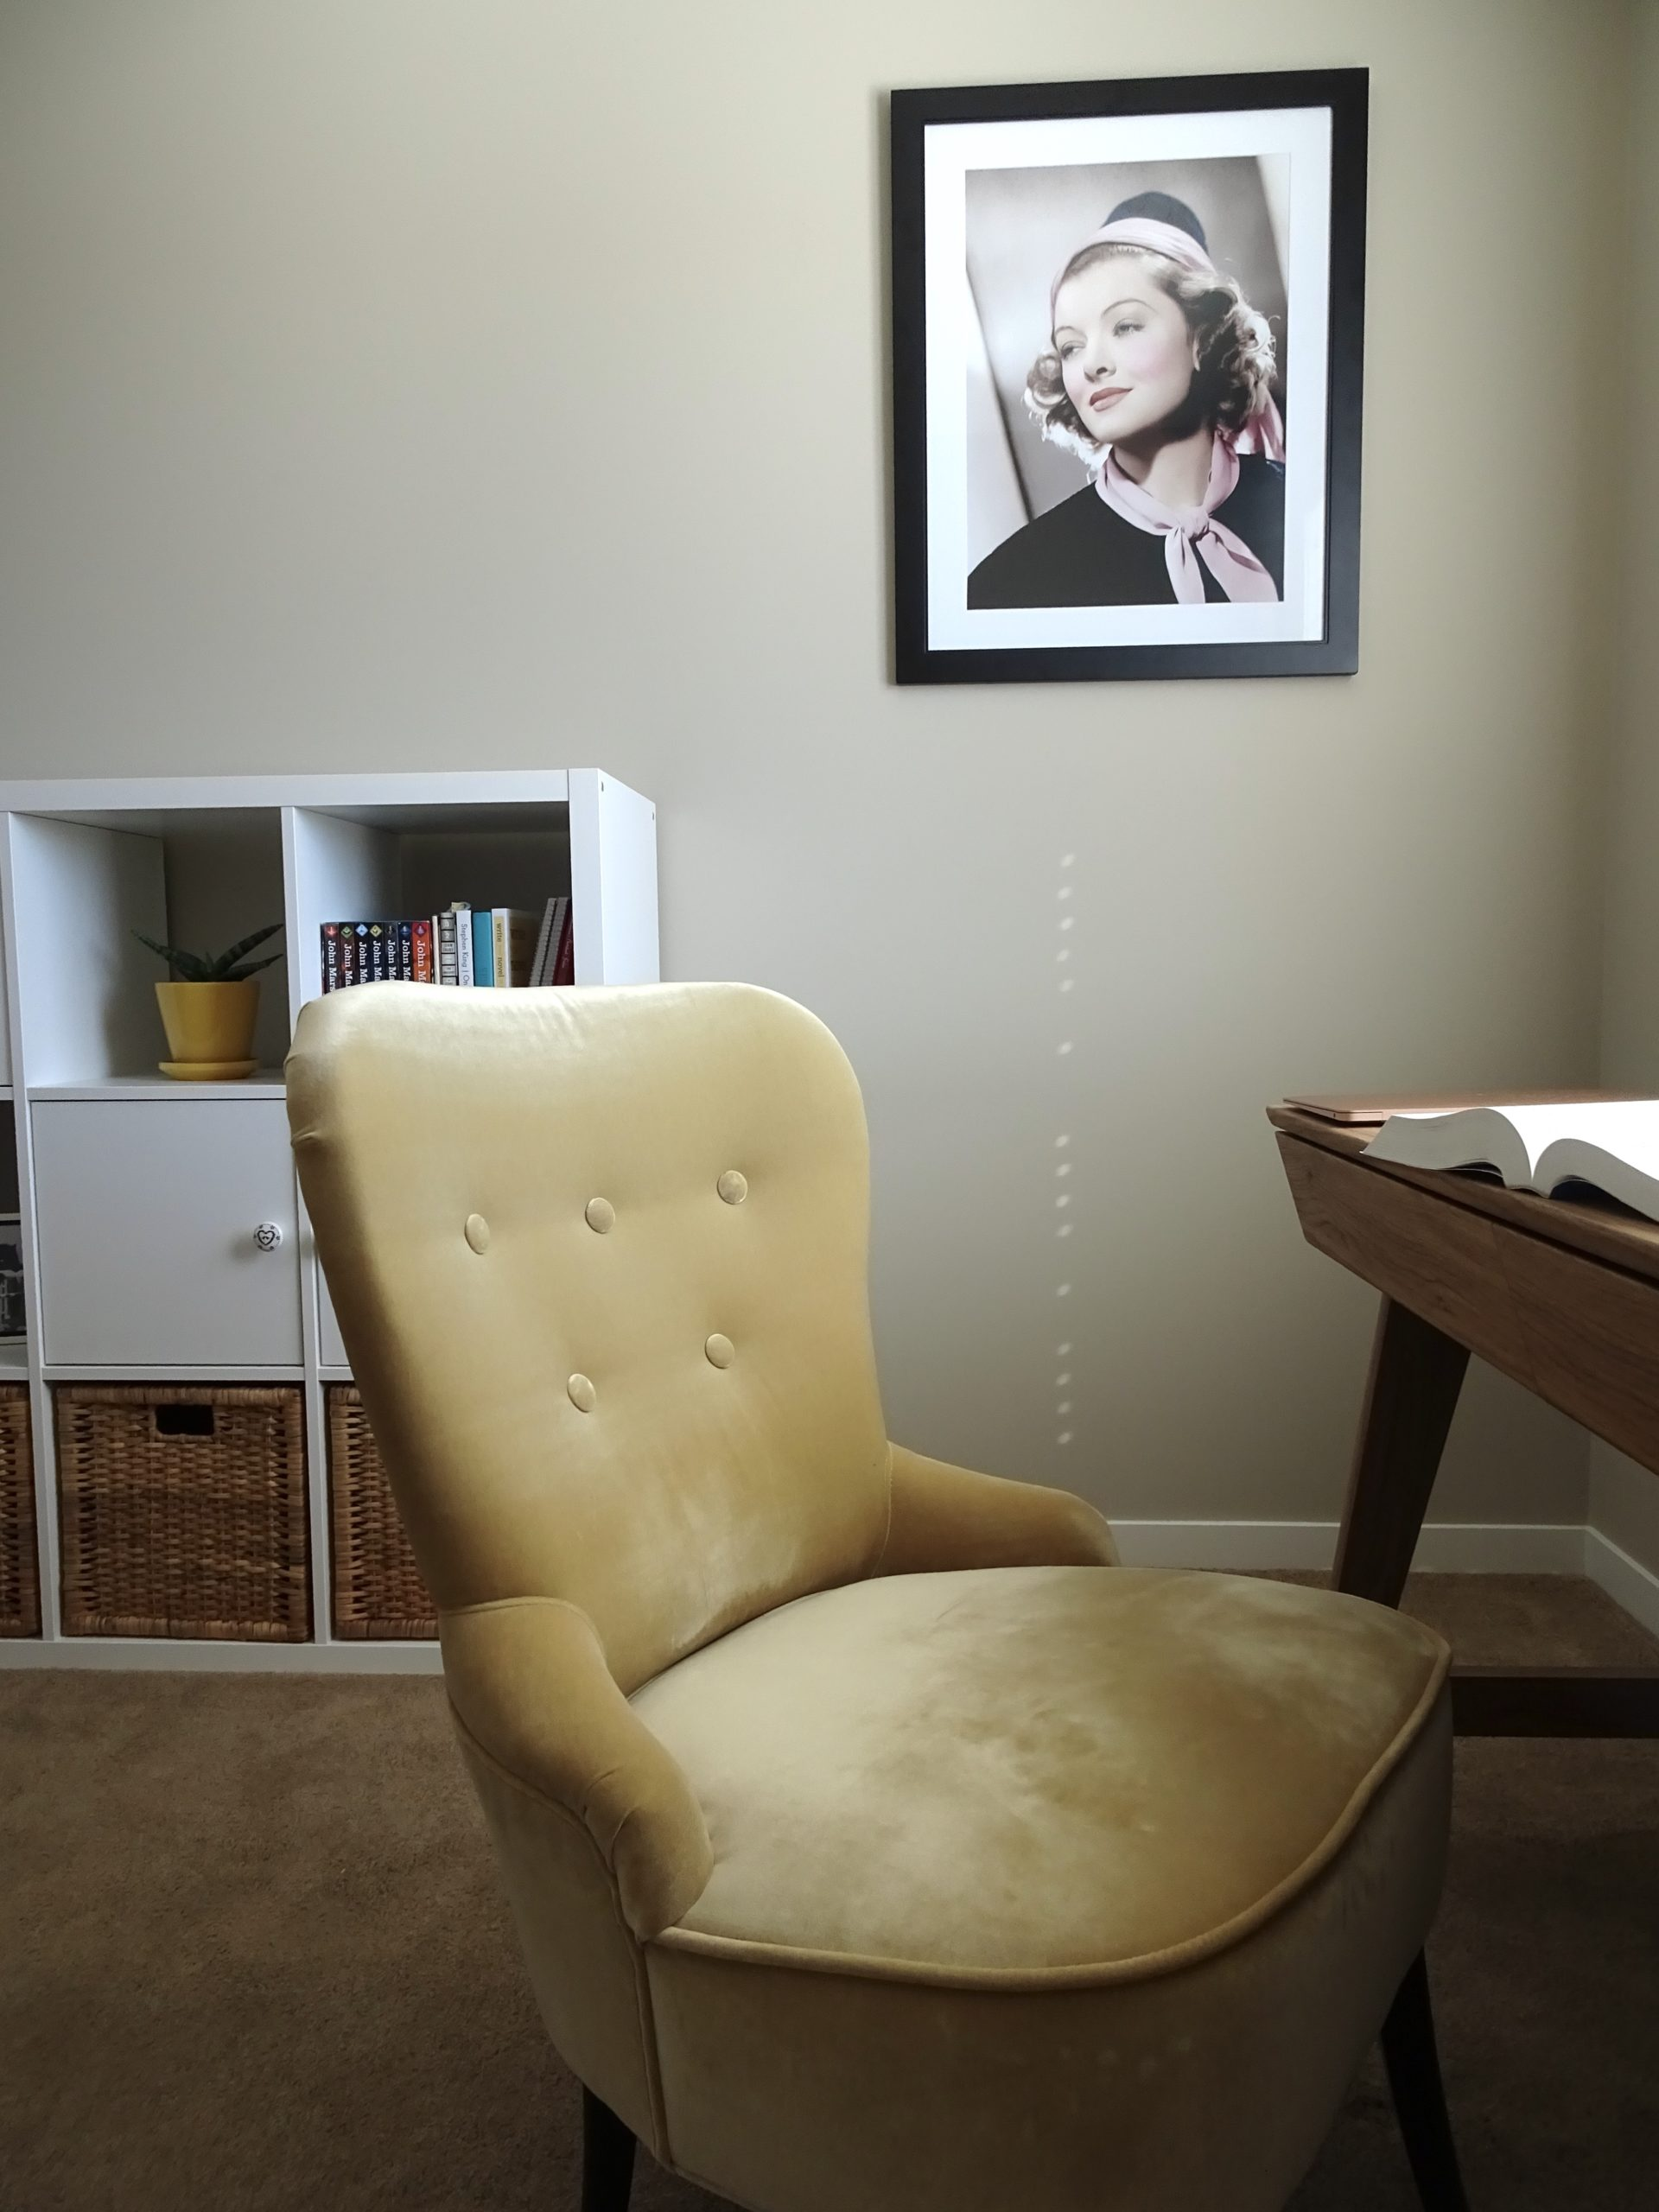 The picture shows Sarah's home office; a pale yellow armchair by an oak-colored wooden desk, with Myrna Loy, the Queen of Hollywood, framed on the wall and a practical-but-pretty white bookcase in the background.